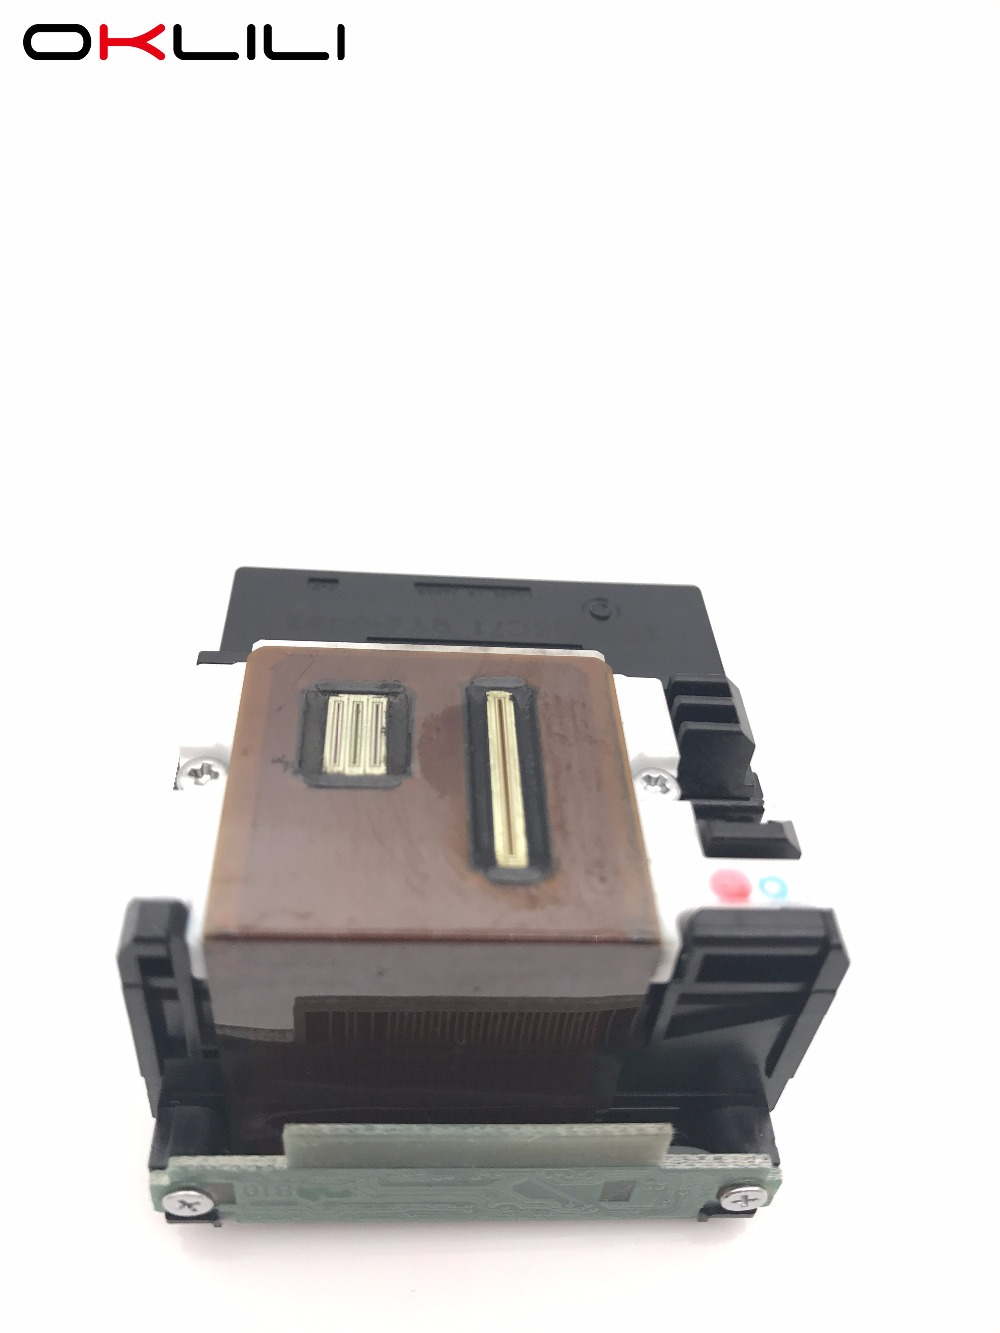 OKLILI ORIGINAL QY6-0052 QY6-0052-000 Printhead Print Head for Canon PIXUS 80i i80 iP90 CF-PL90 PL95 PL90W PL95W new original print head qy6 0061 00 printhead for canon ip4300 ip5200 ip5200r mp600 mp600r mp800 mp800r mp830 plotter